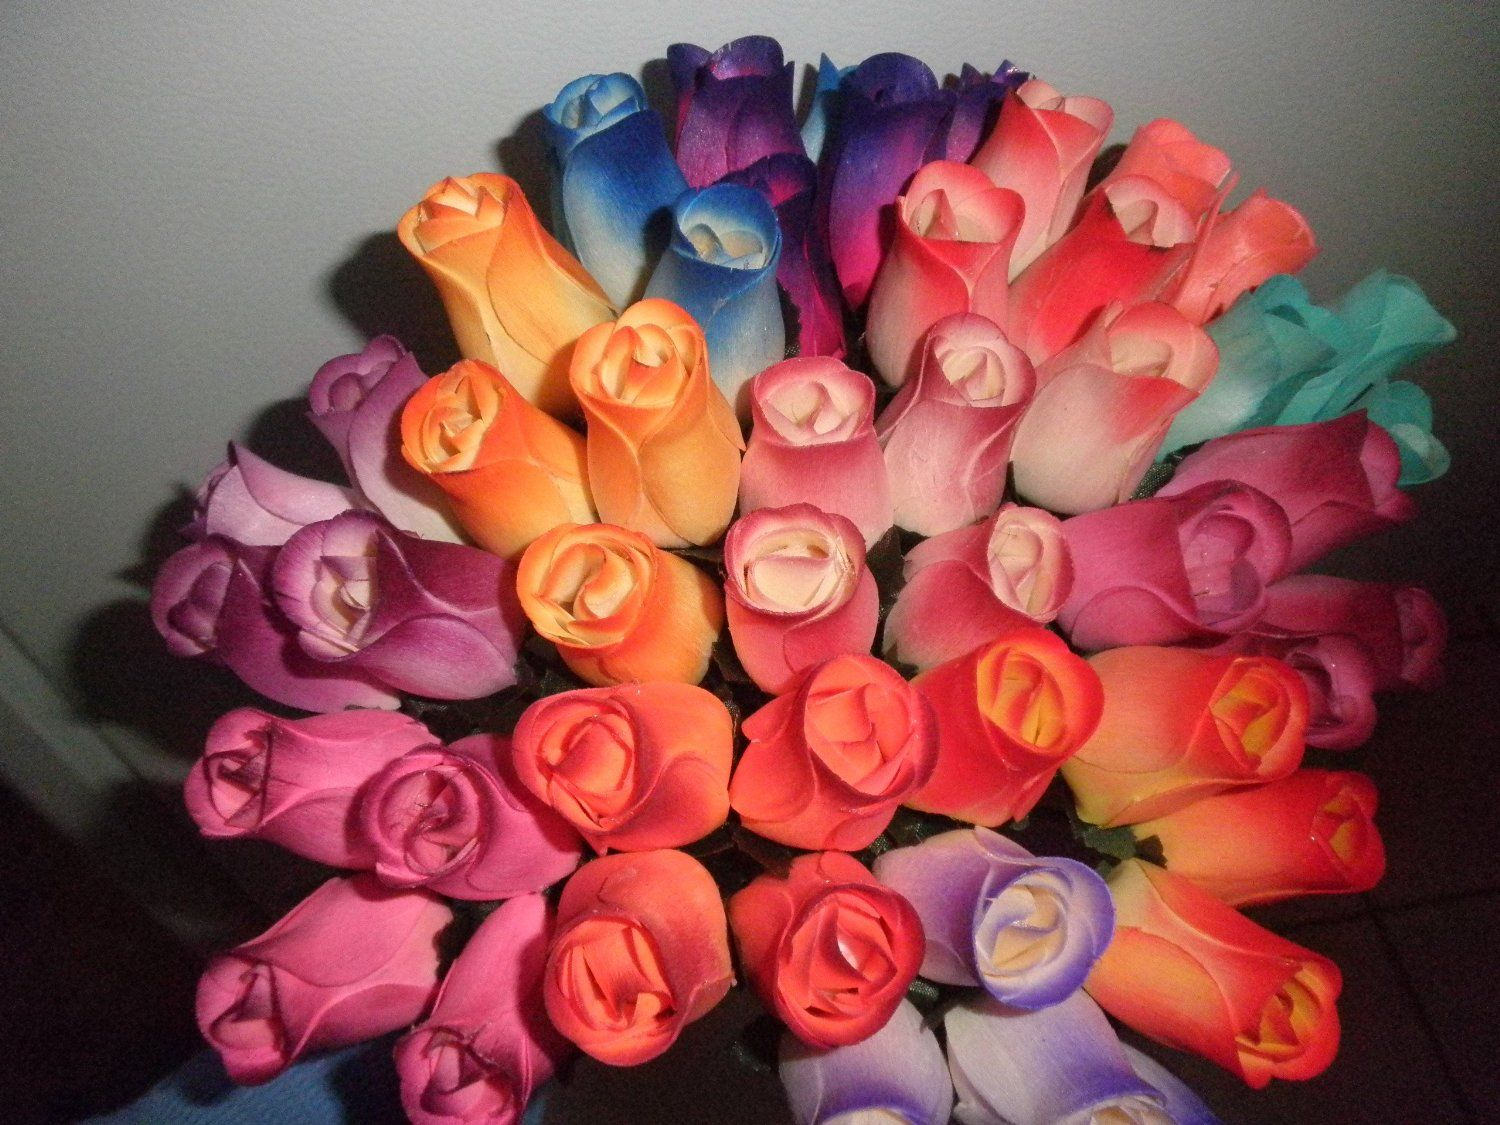 24 Mixed Color Wooden Rose Buds Artificial Flower Price: $12.99 | Wooden roses, Rose buds ...